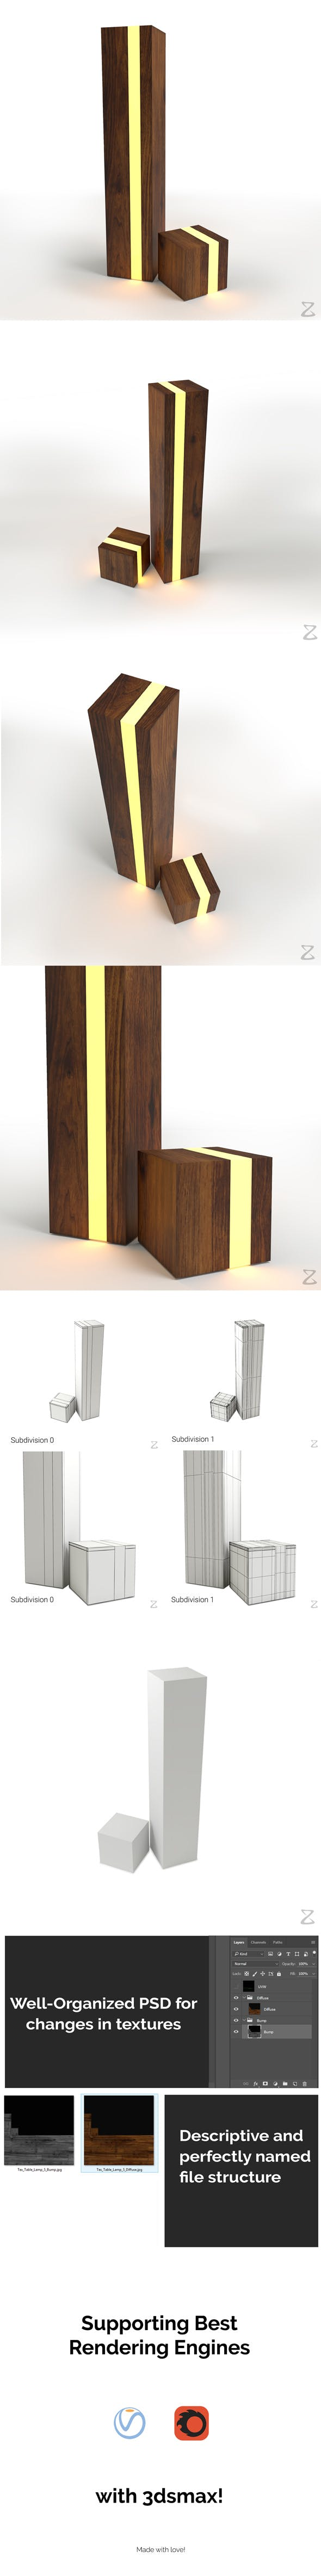 Table Lamp 5 - 3DOcean Item for Sale